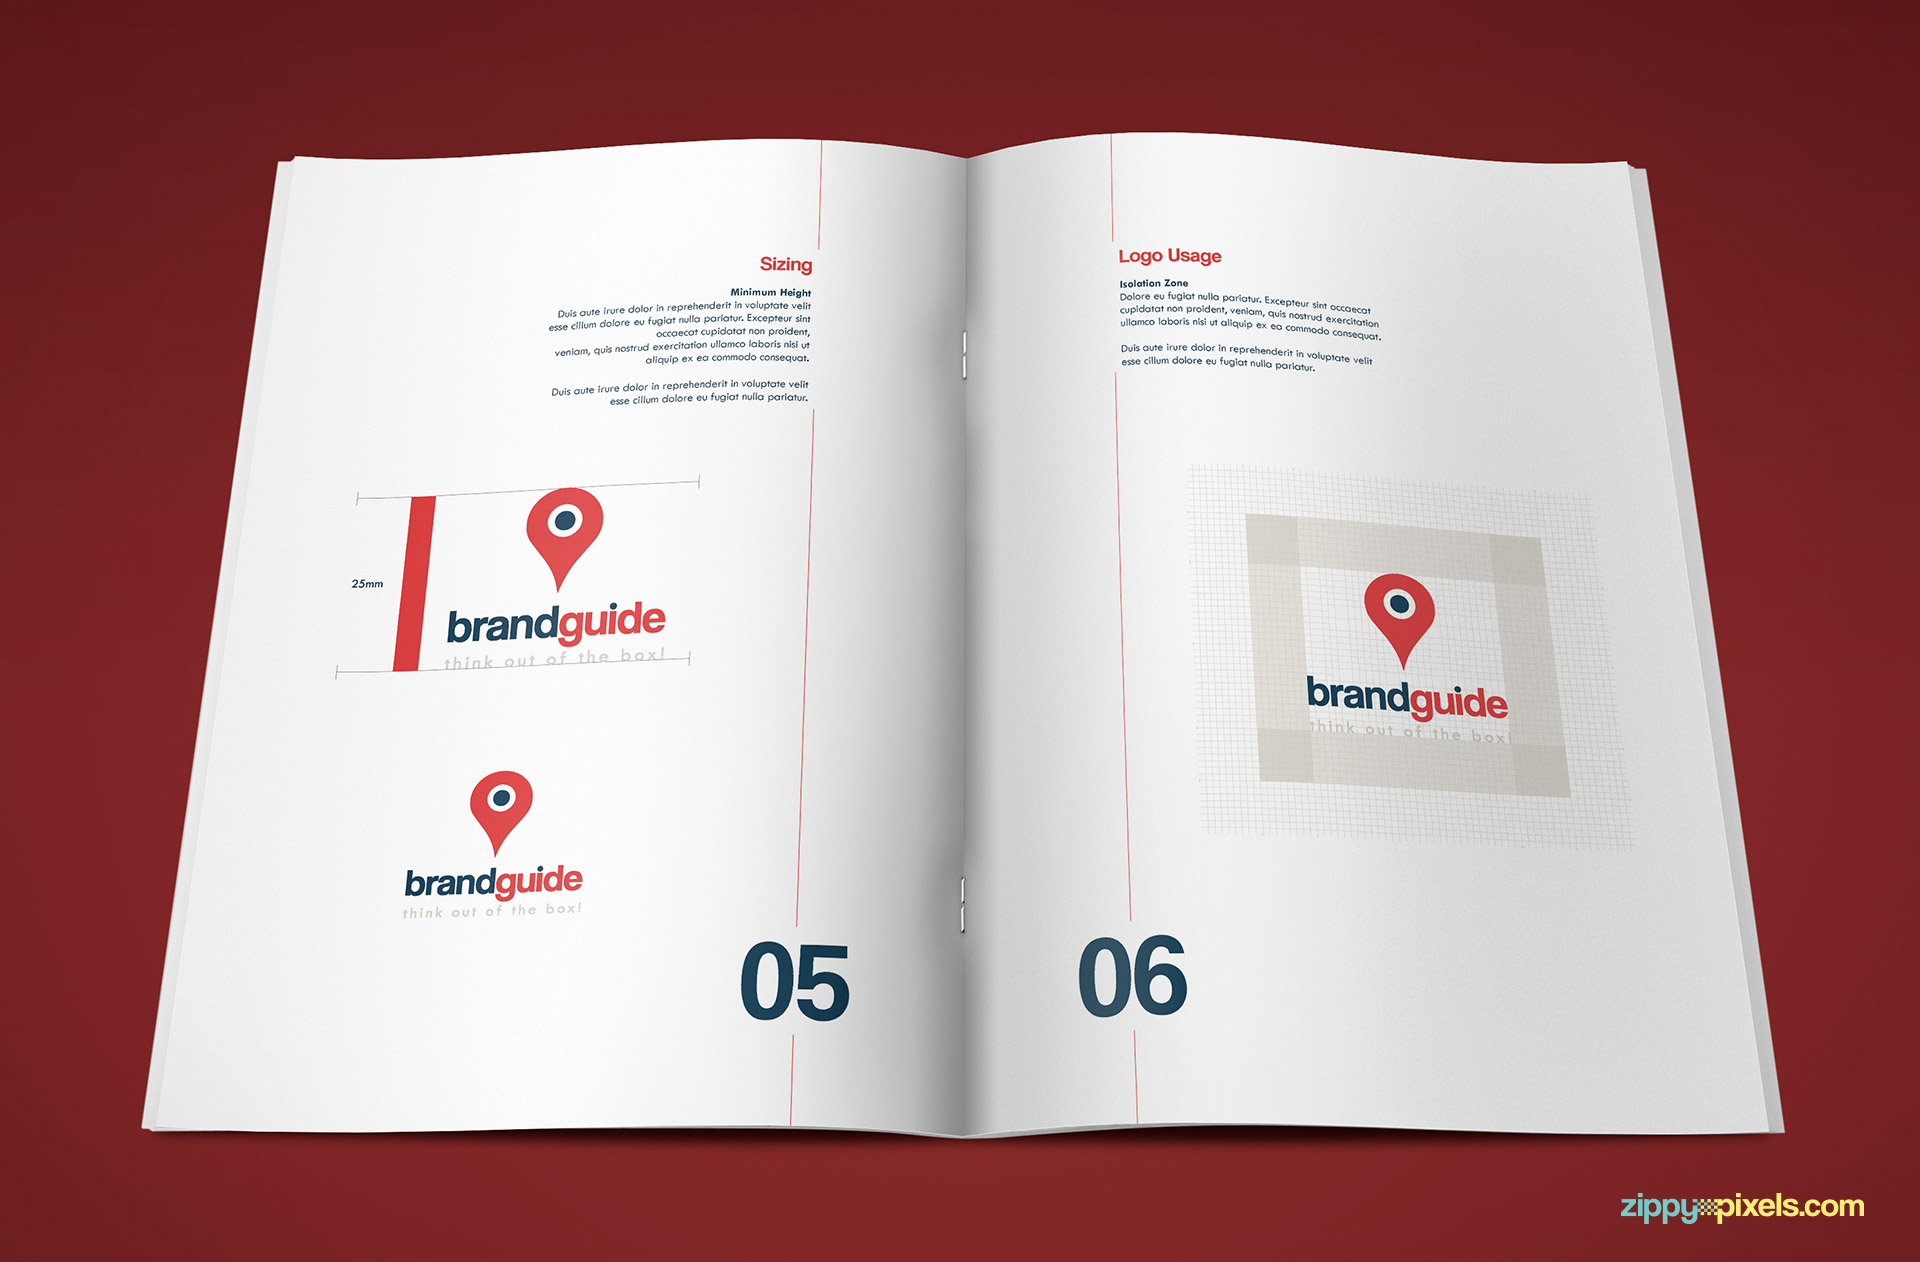 Logo Usage Page of Professional Brand Guidelines Template